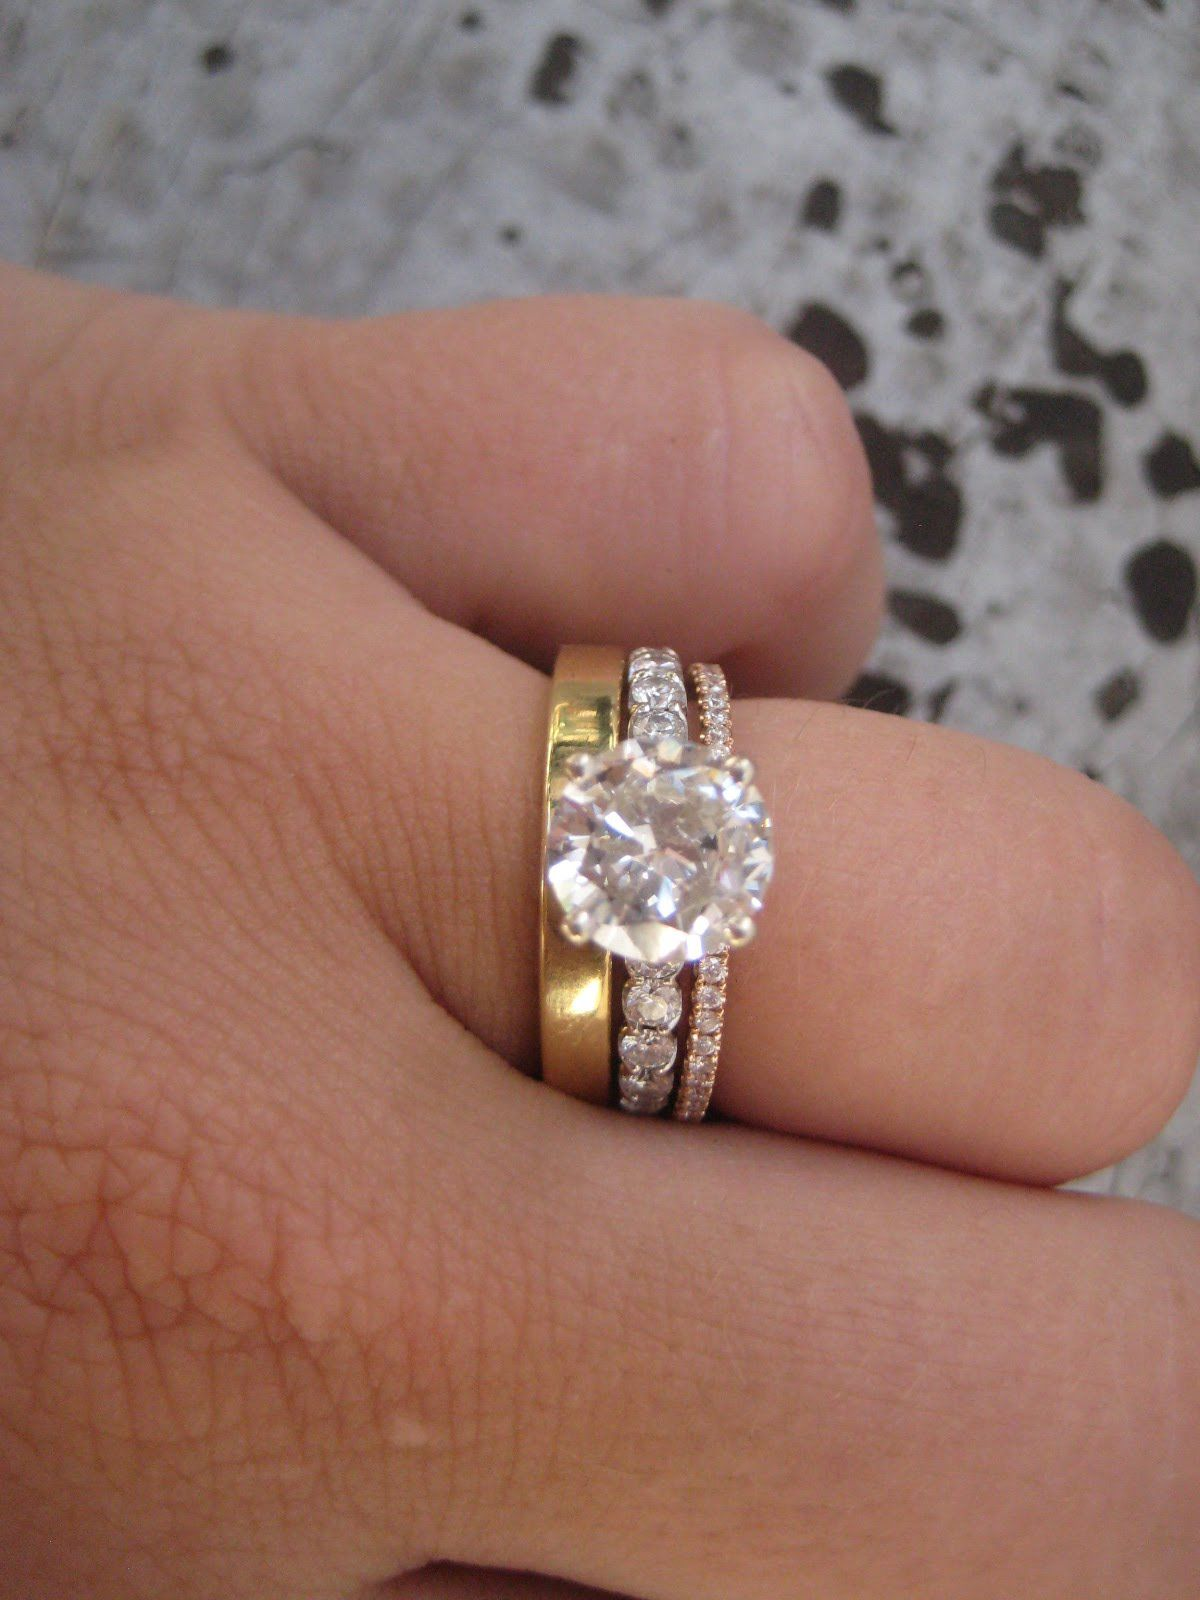 vs bands yellow your engagement wedding gold diamond band her ring promise rings for